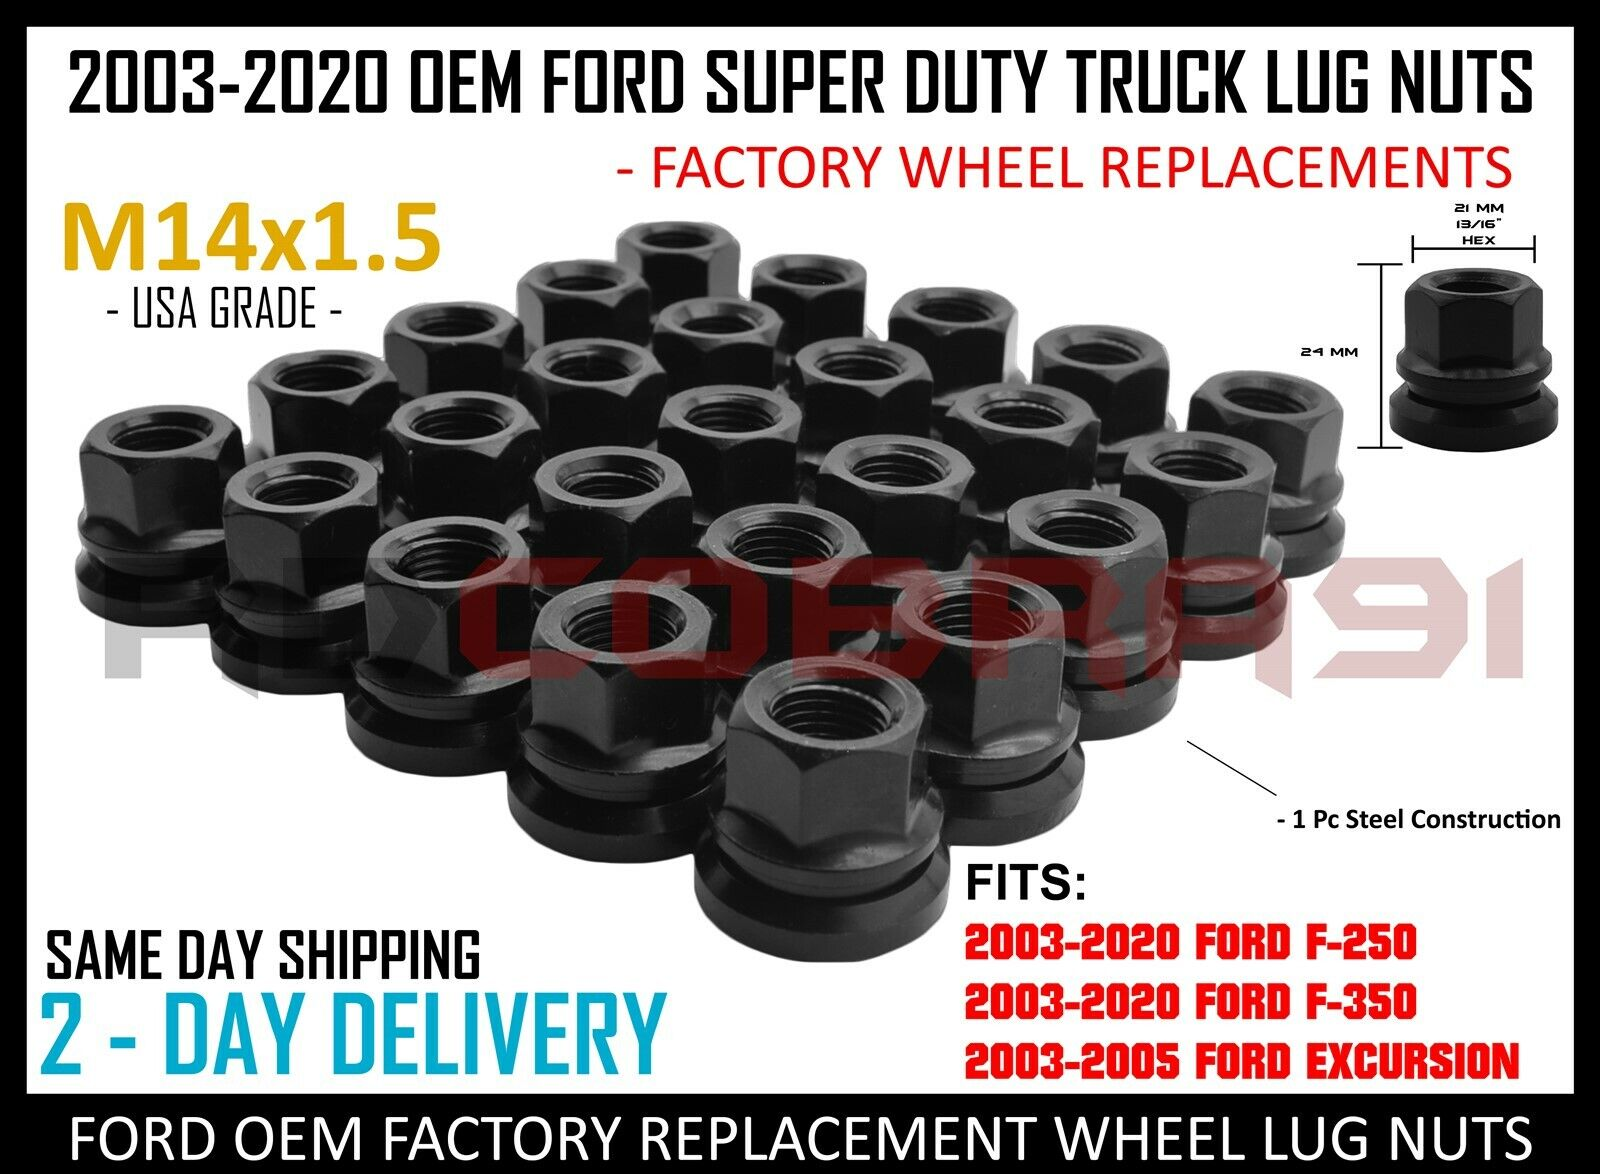 32PC FORD CHROME CONICAL SEAT 14X1.5 WHEEL LUG NUTS BULGE ACORN FOR FORD MODELS